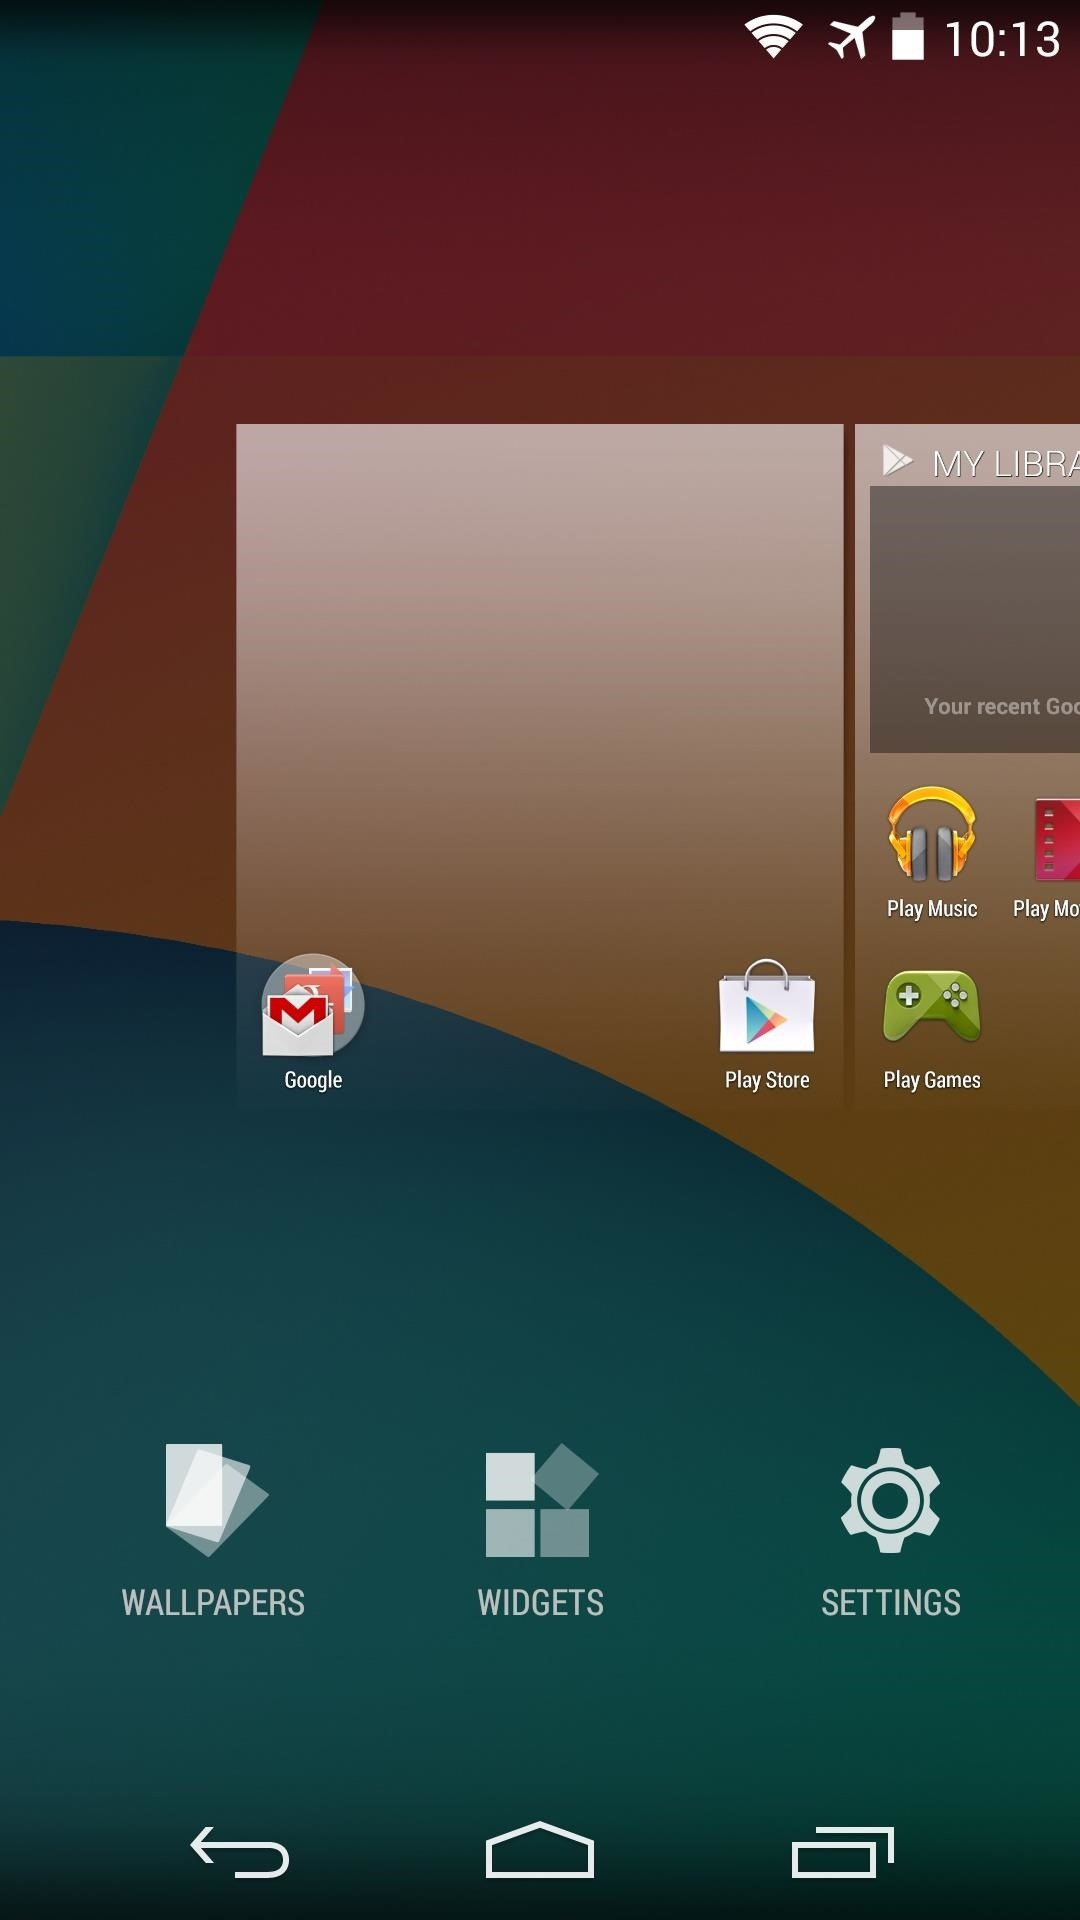 How to Get the Android L Launcher on Your Nexus 5 or Other KitKat Device